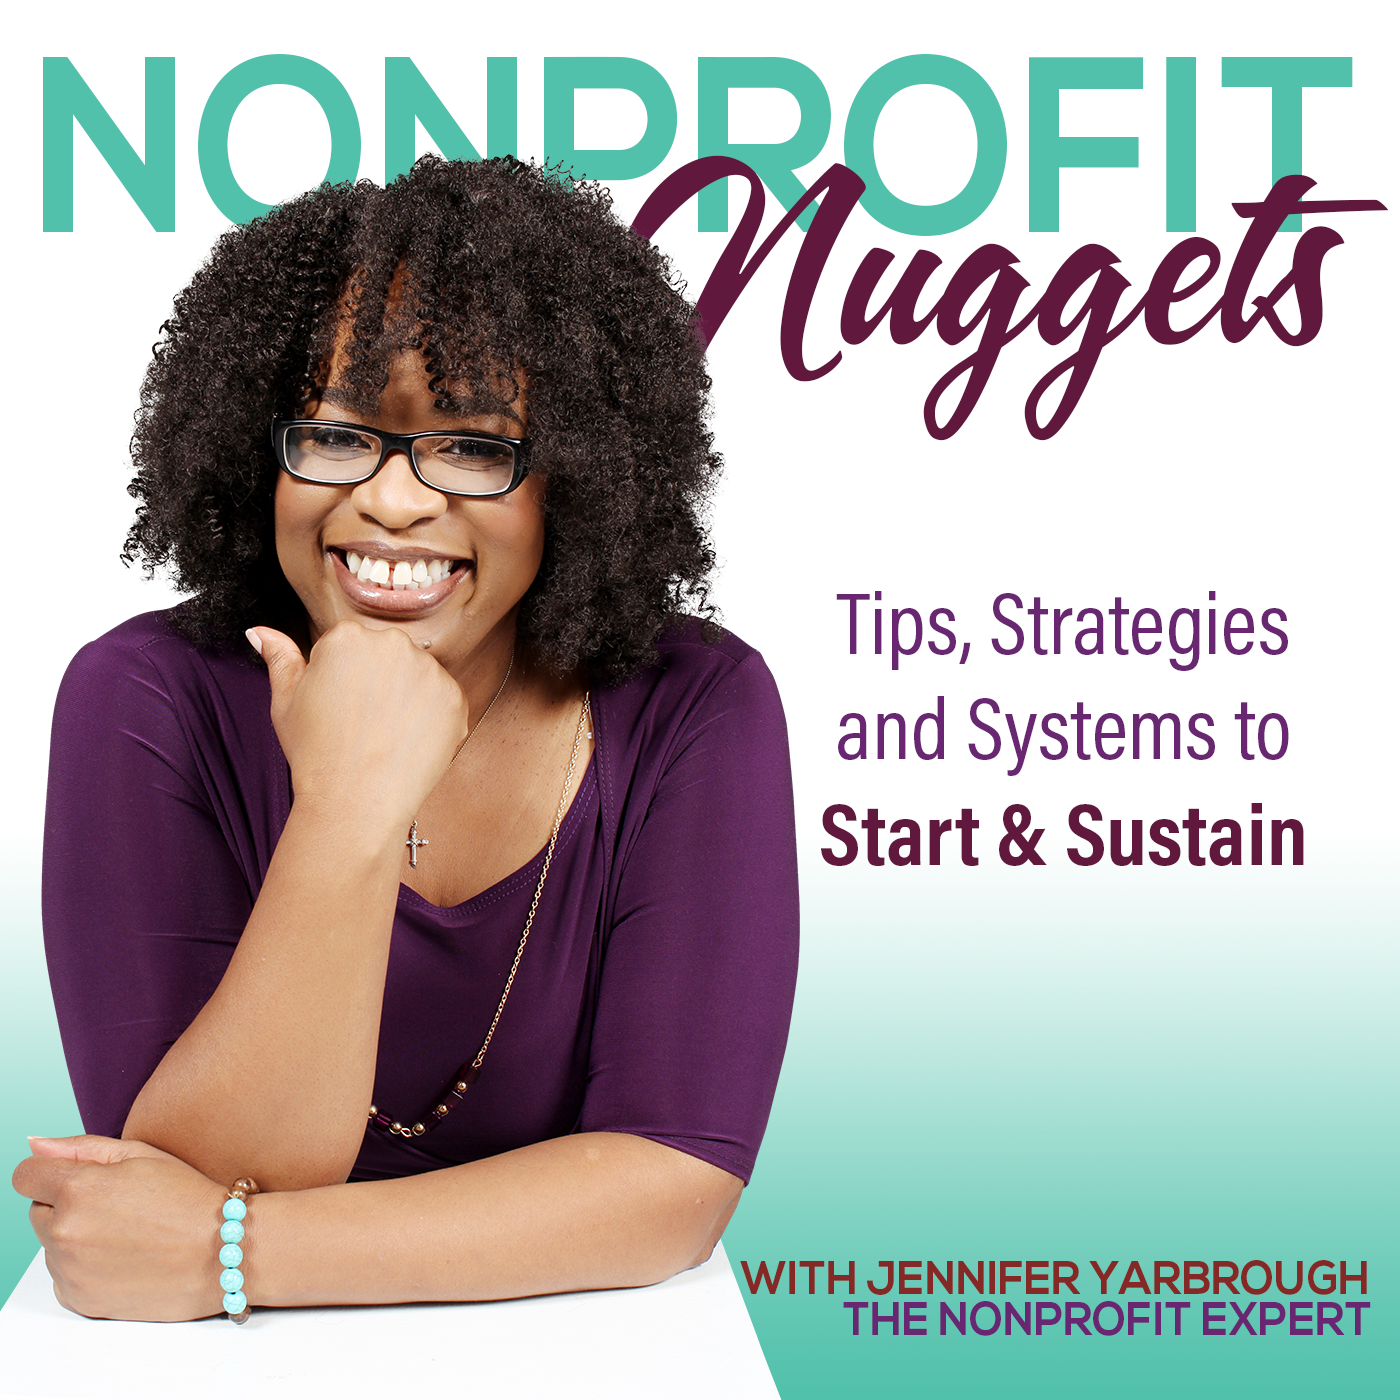 How to Raise More Money For Your Nonprofit